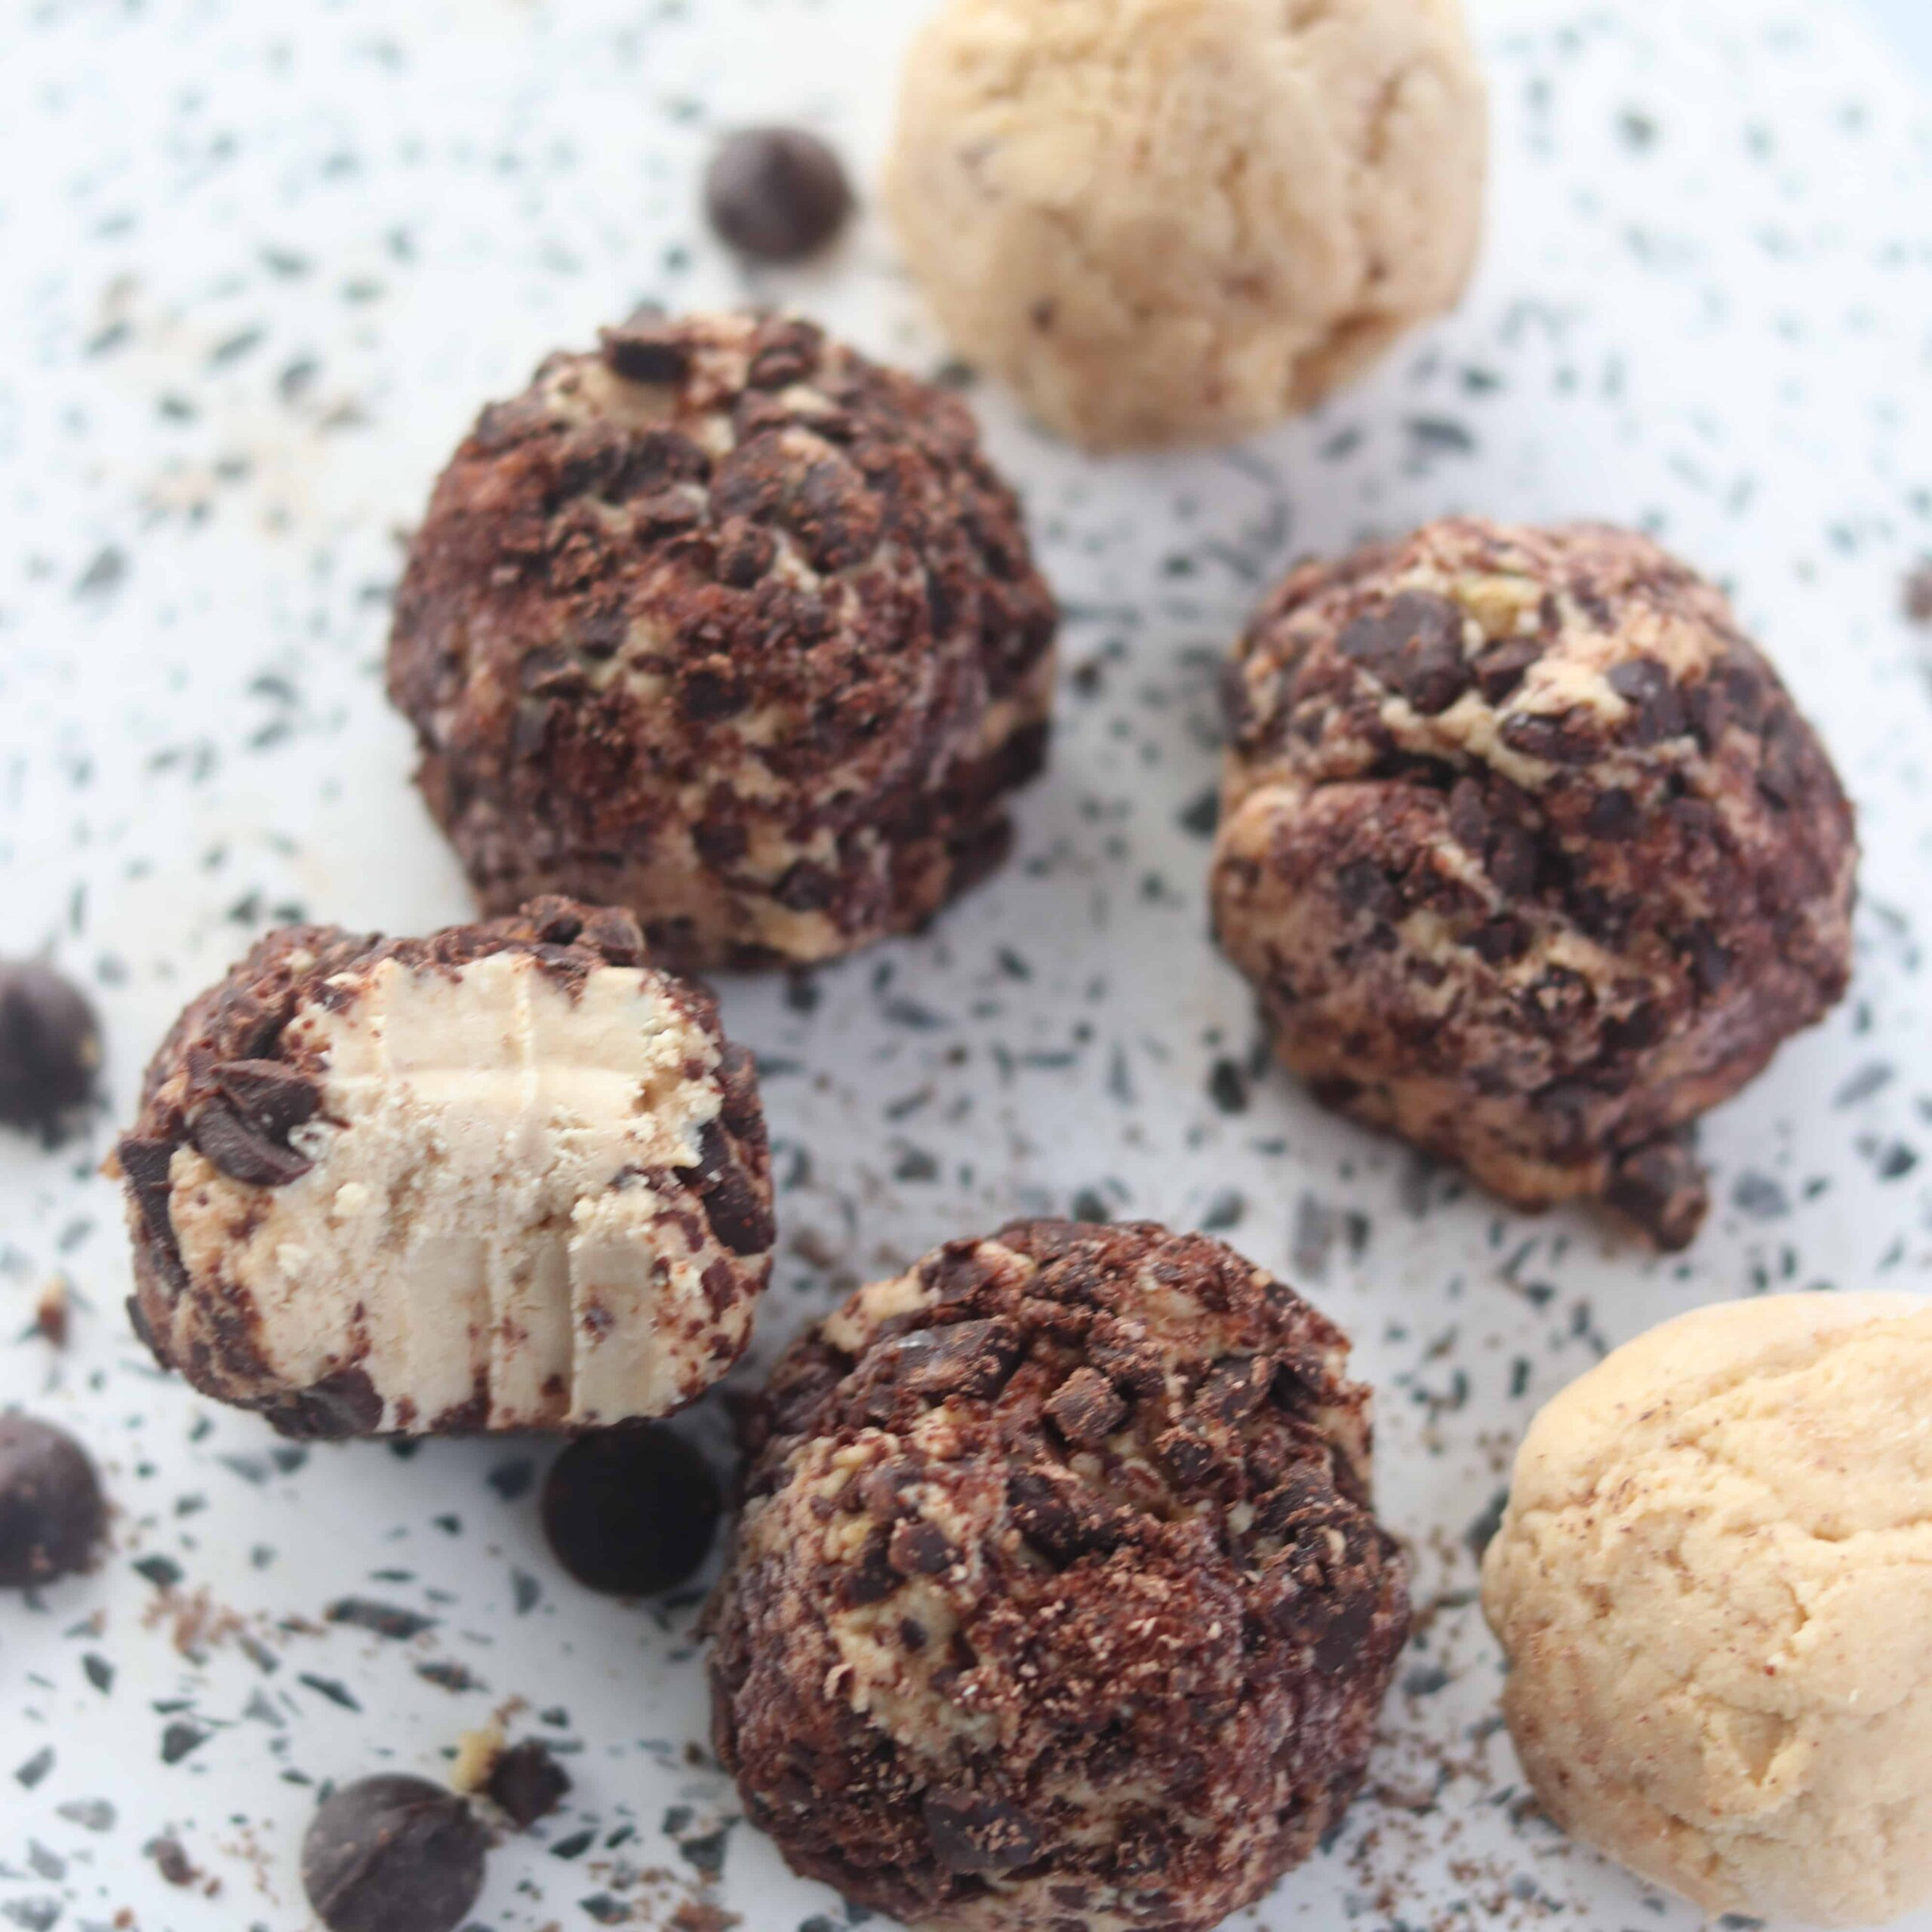 cream cheese keto dessert with peanut butter and chocolate that are no bake balls